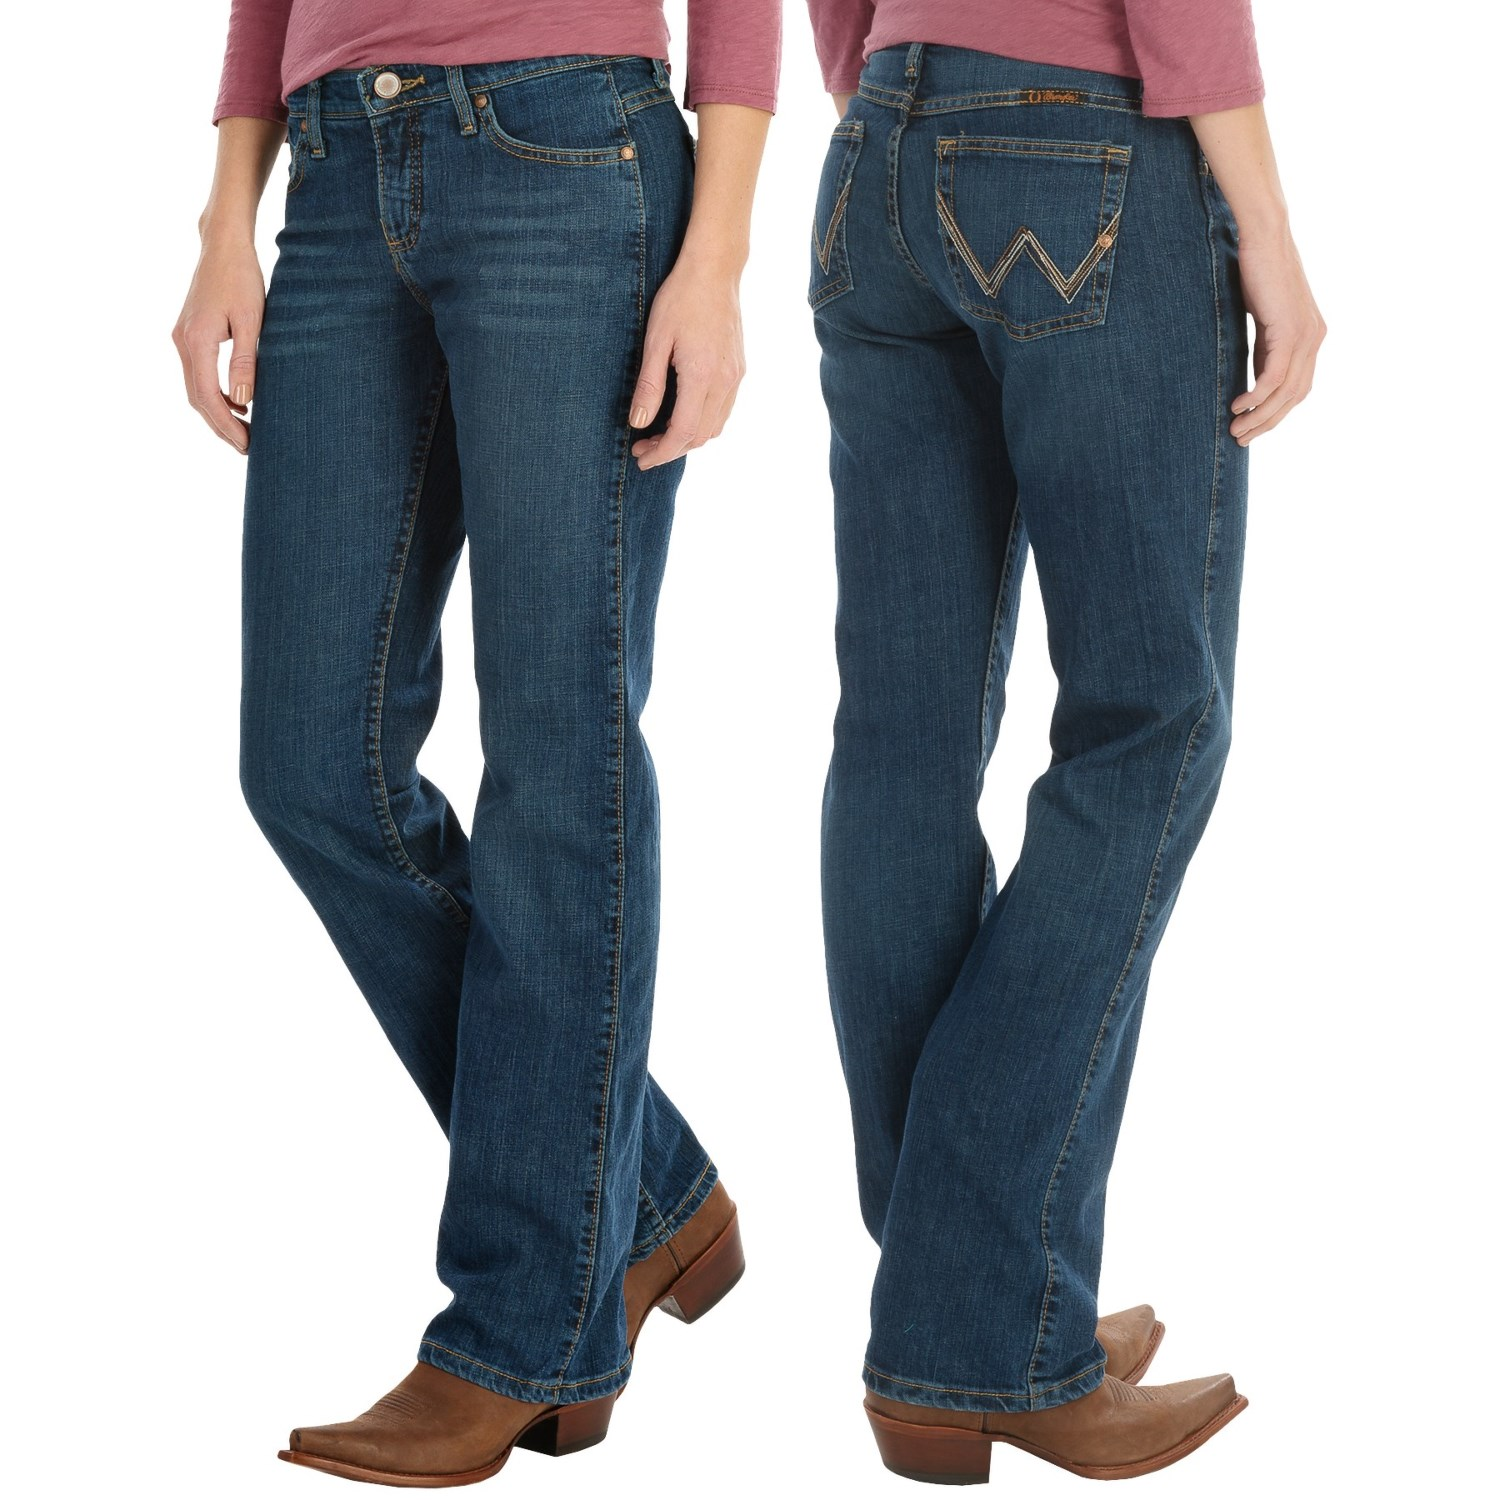 0c935447f57 Wrangler Q-Baby Ultimate Riding Jeans (For Women) - Save 48%